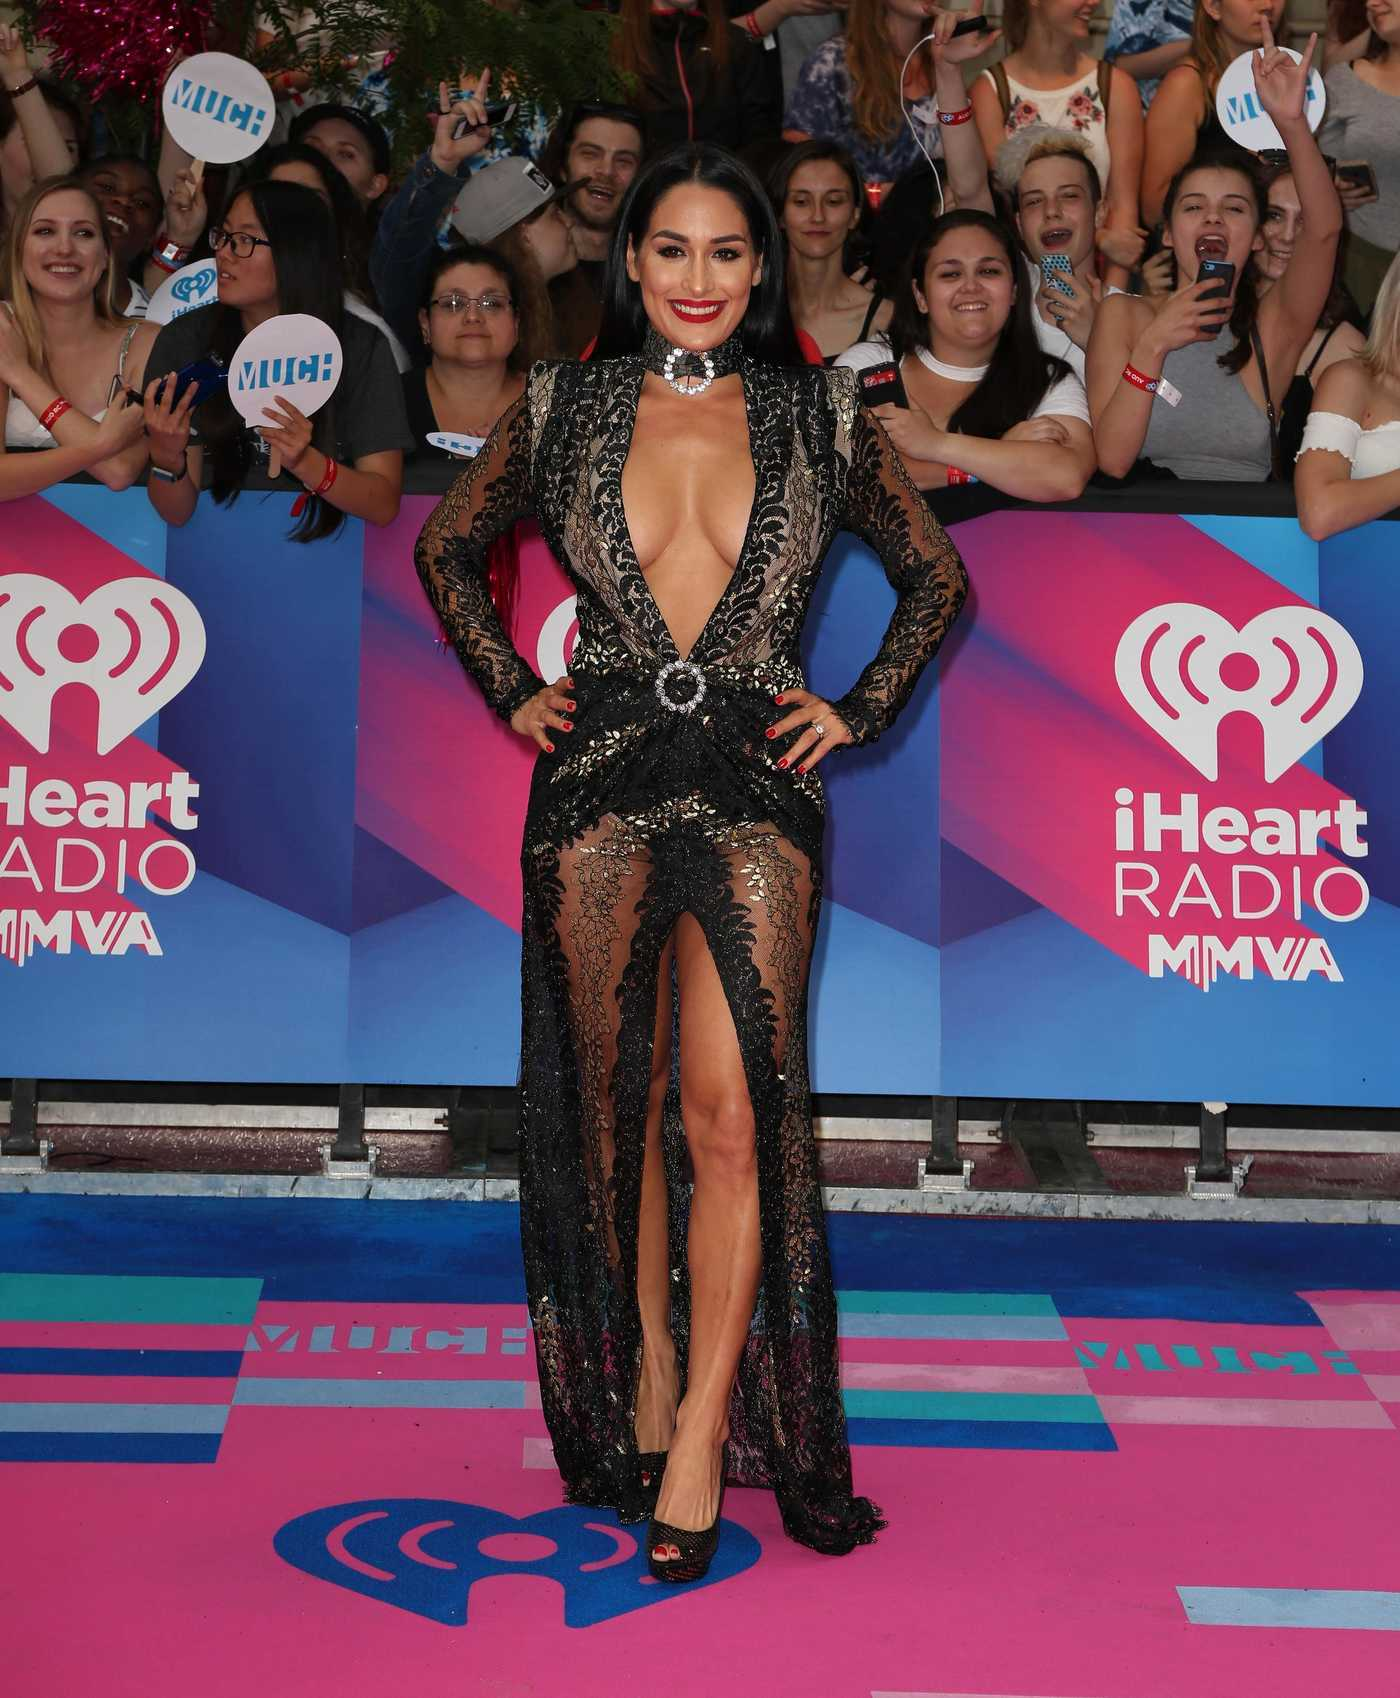 Nikki Bella Arrives at the iHeartRadio MuchMusic Video Awards in Toronto 06/18/2017